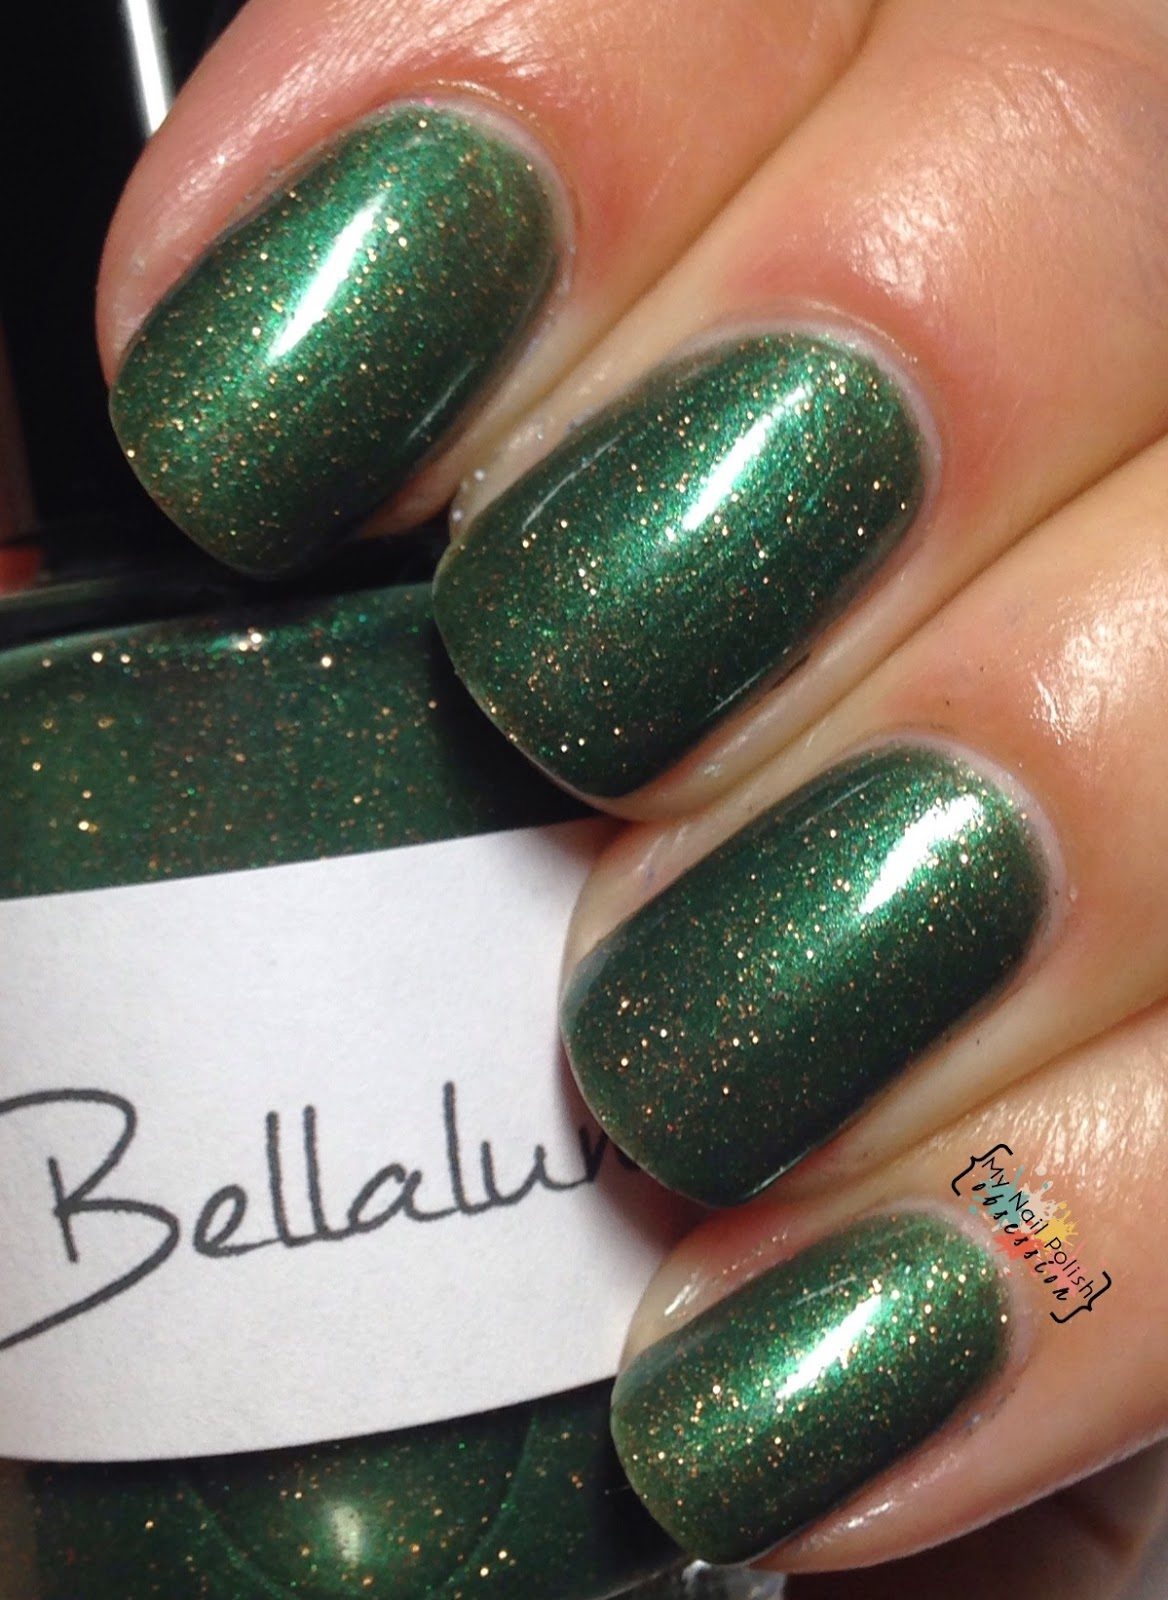 Bellaluna Cosmetics Belle of the Ball